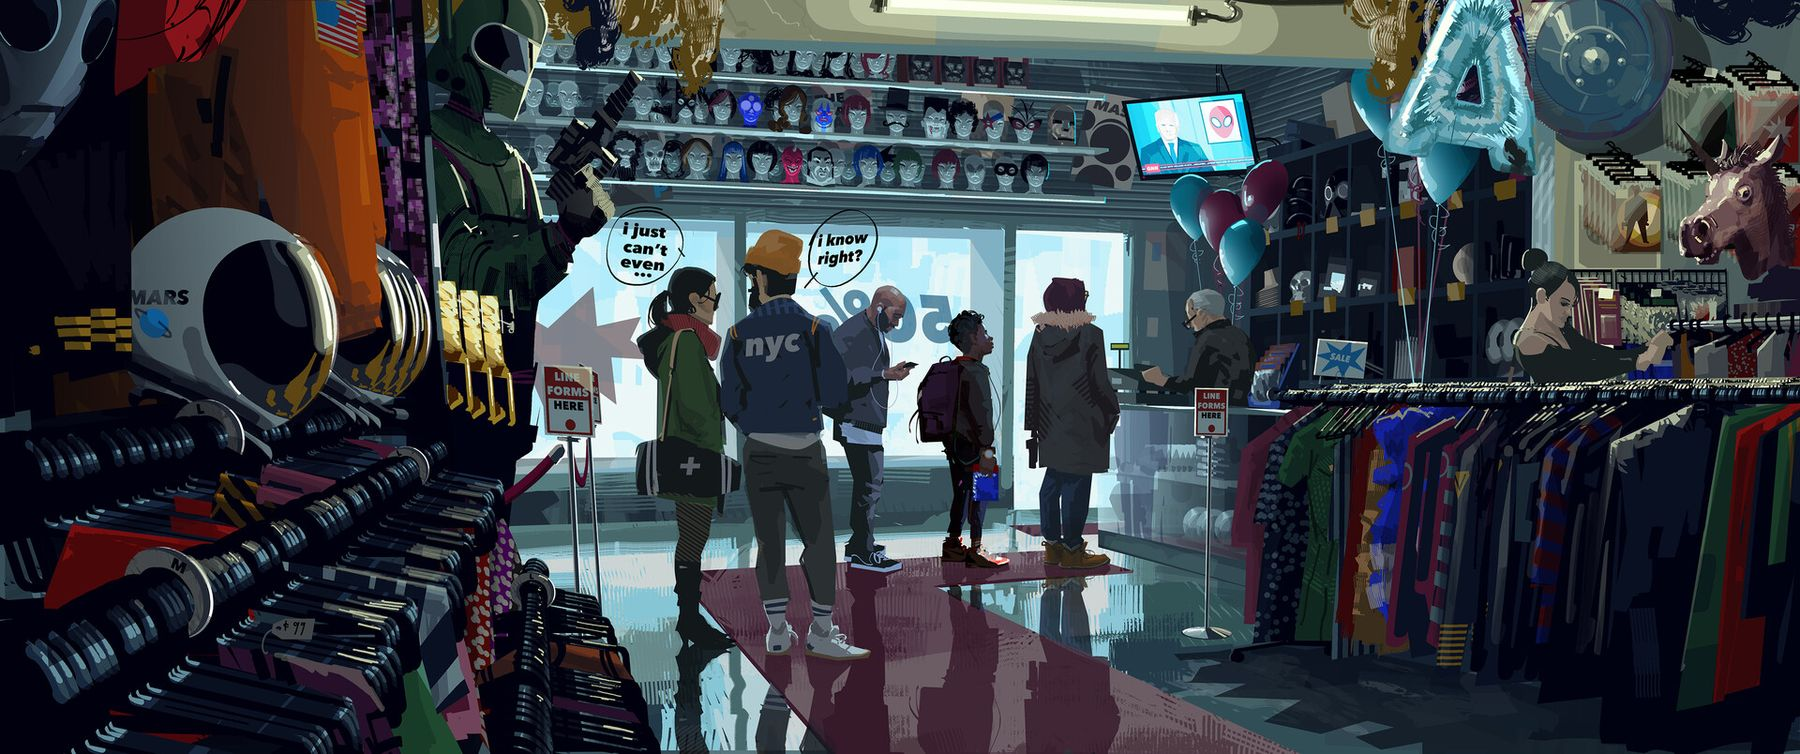 Spiderman Ps4 Wallpaper Hd Spider Man Into The Spider Verse Concept Art By Patrick O